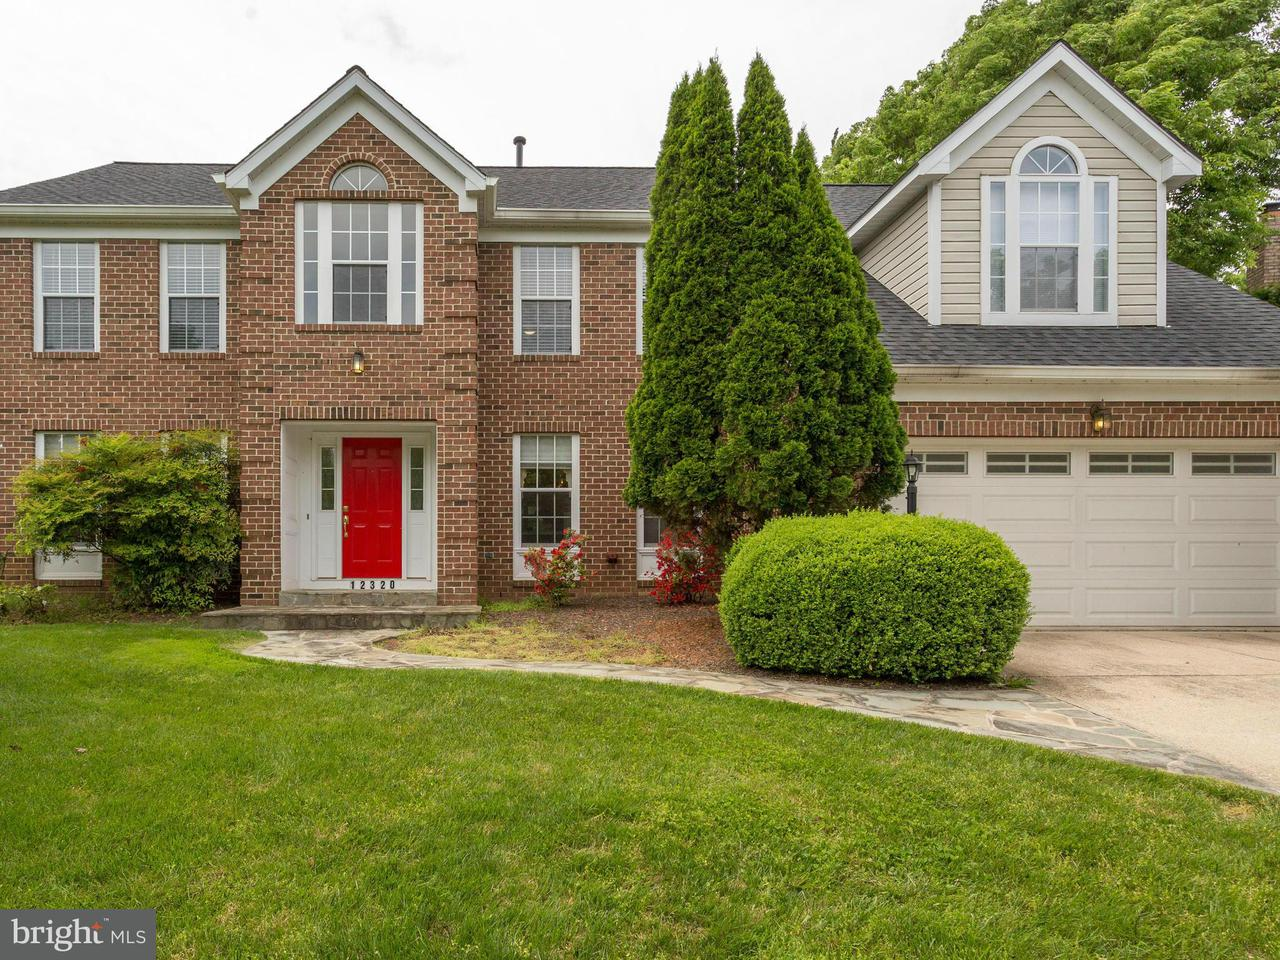 Single Family Home for Sale at 12320 PISSARO Drive 12320 PISSARO Drive North Potomac, Maryland 20878 United States